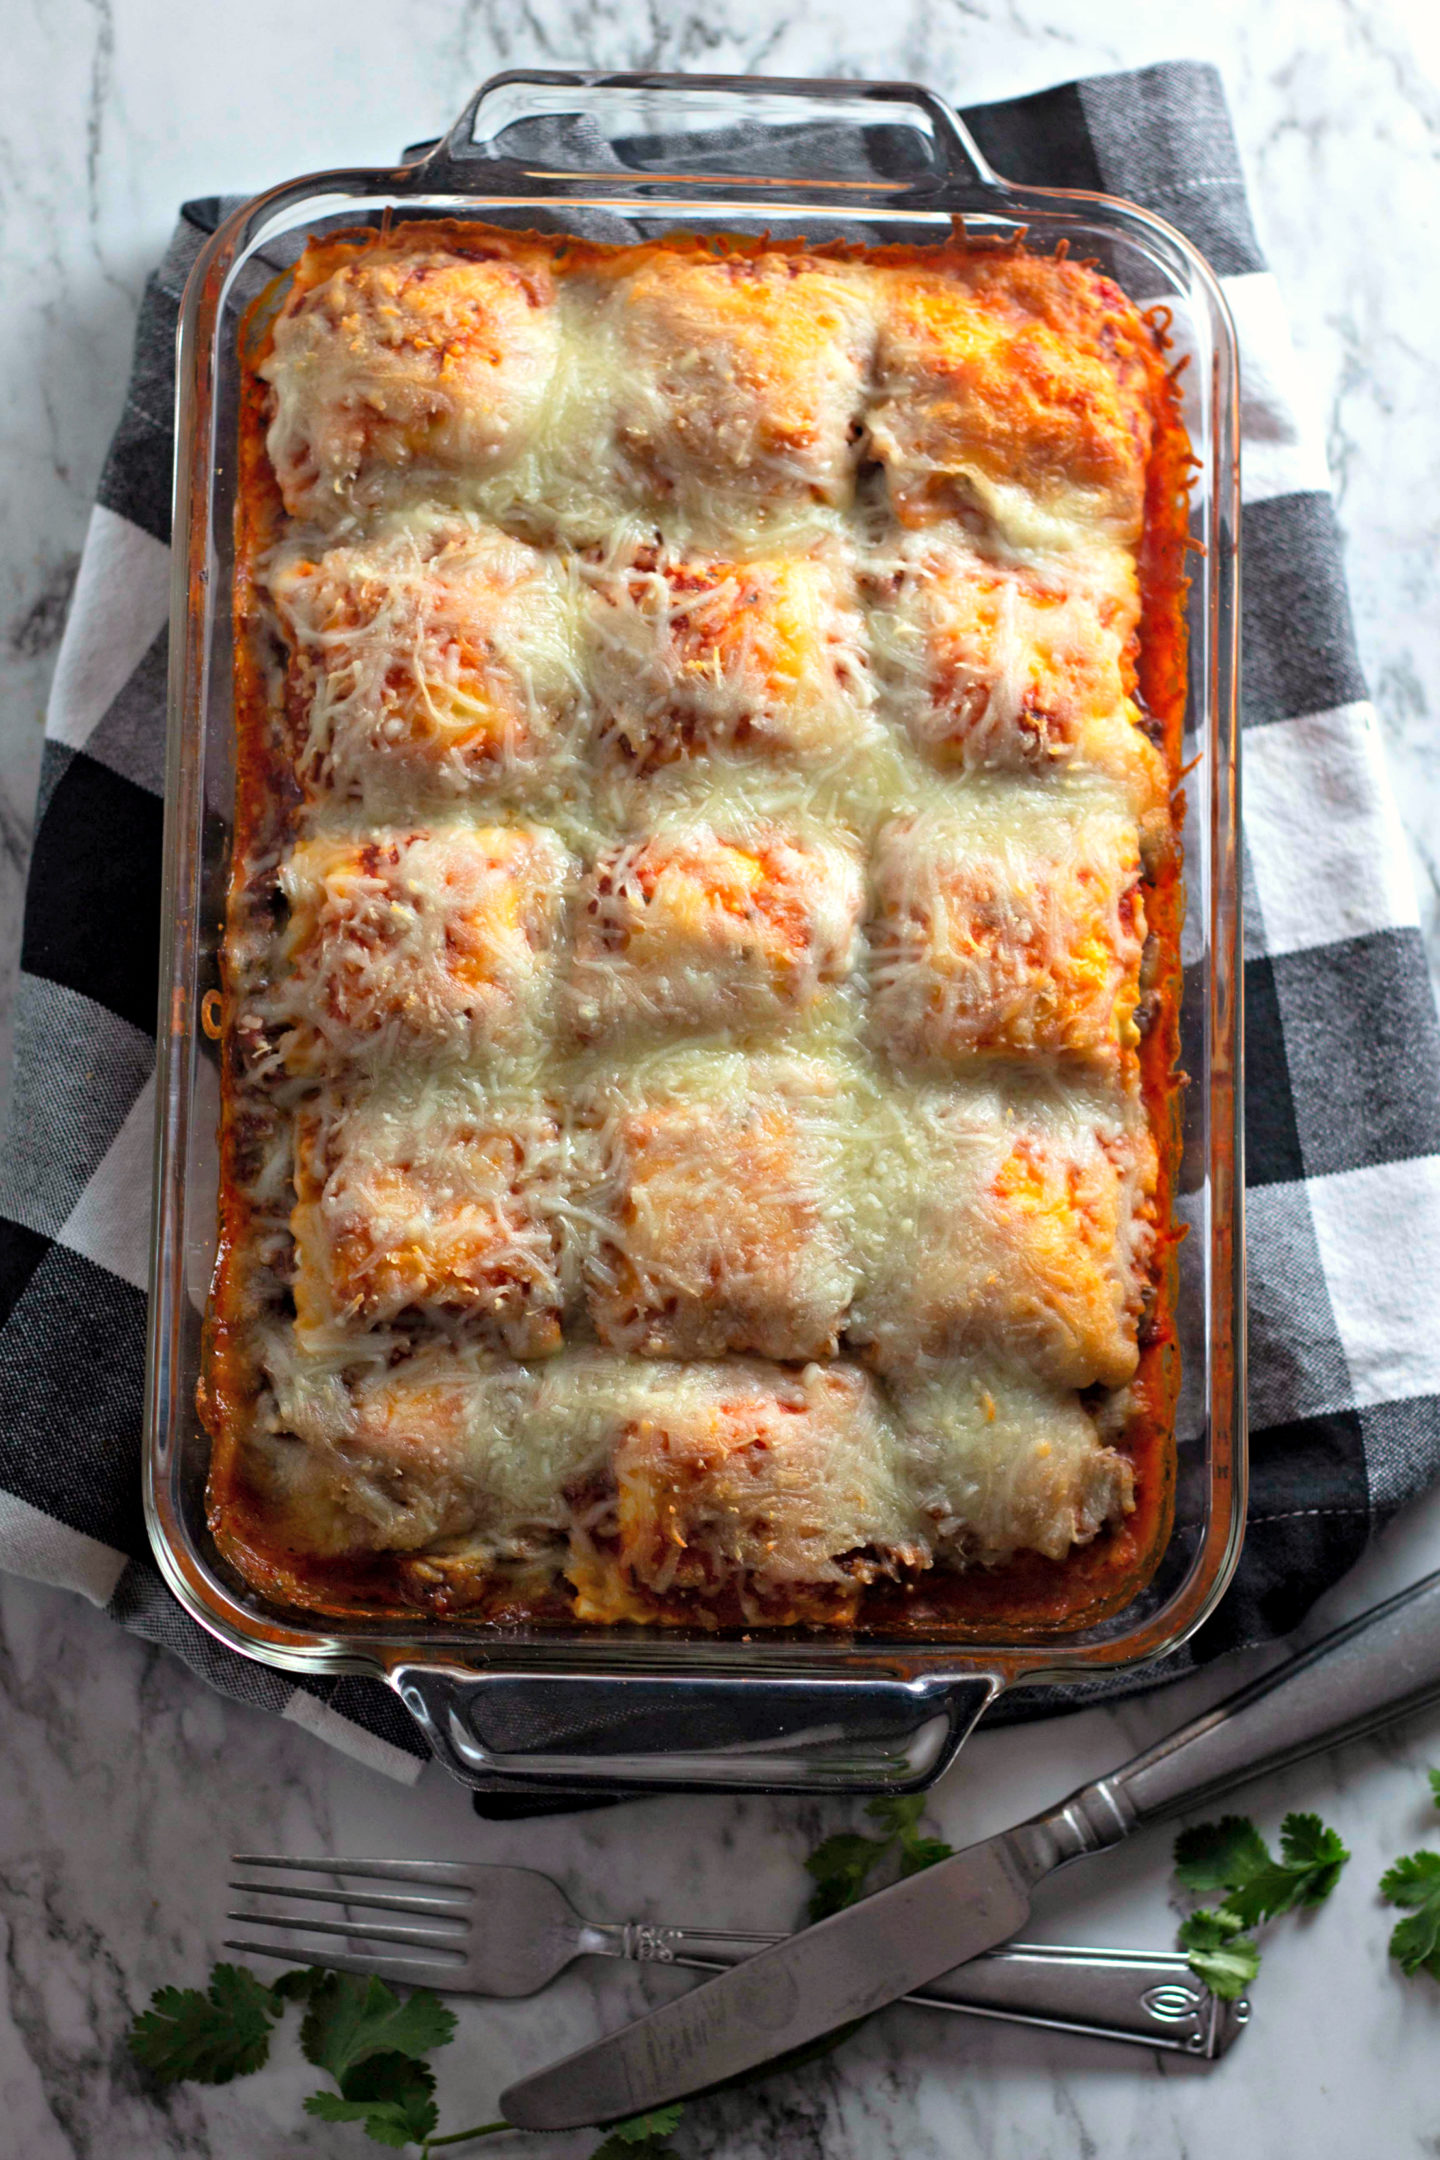 Ravioli Lasagna is a pan of baked ravioli topped with sauce and cheese.